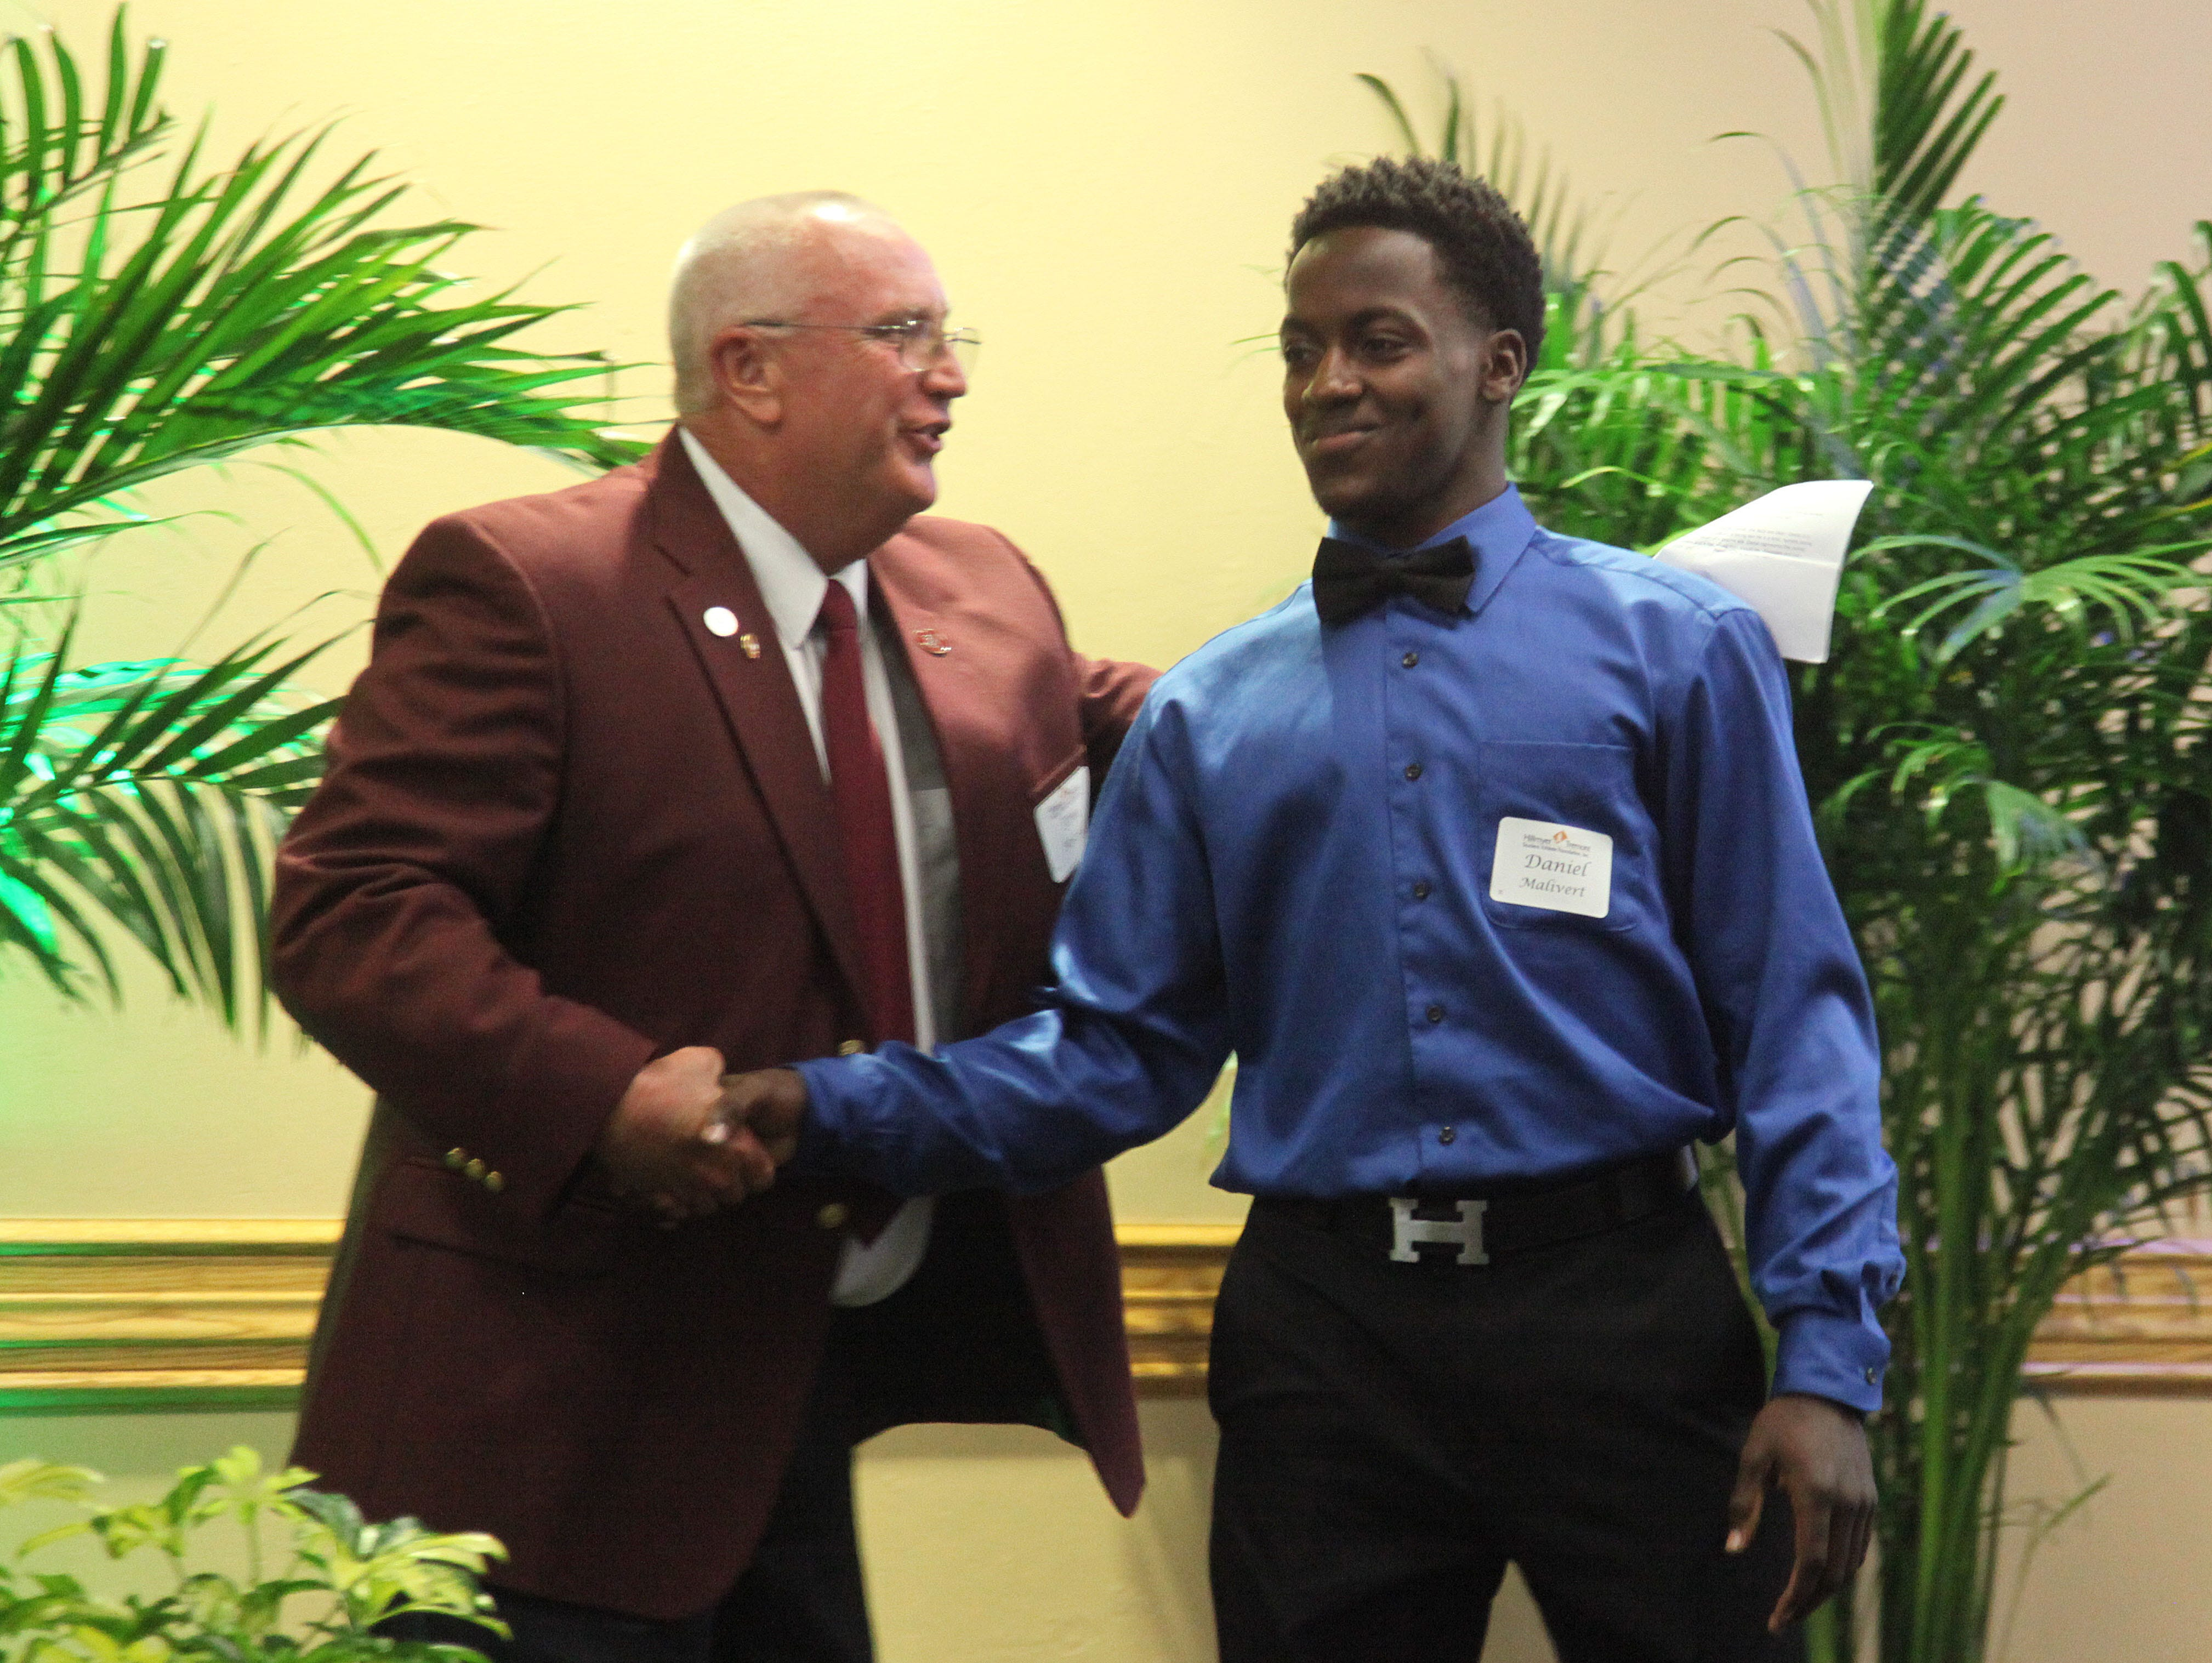 Daniel Malivert, of Riverdale High School, is congratulated by coach Tom Roszell during the Hillmyer-Tremont scholarship banquet at FGCU's Cohen Center on Monday.